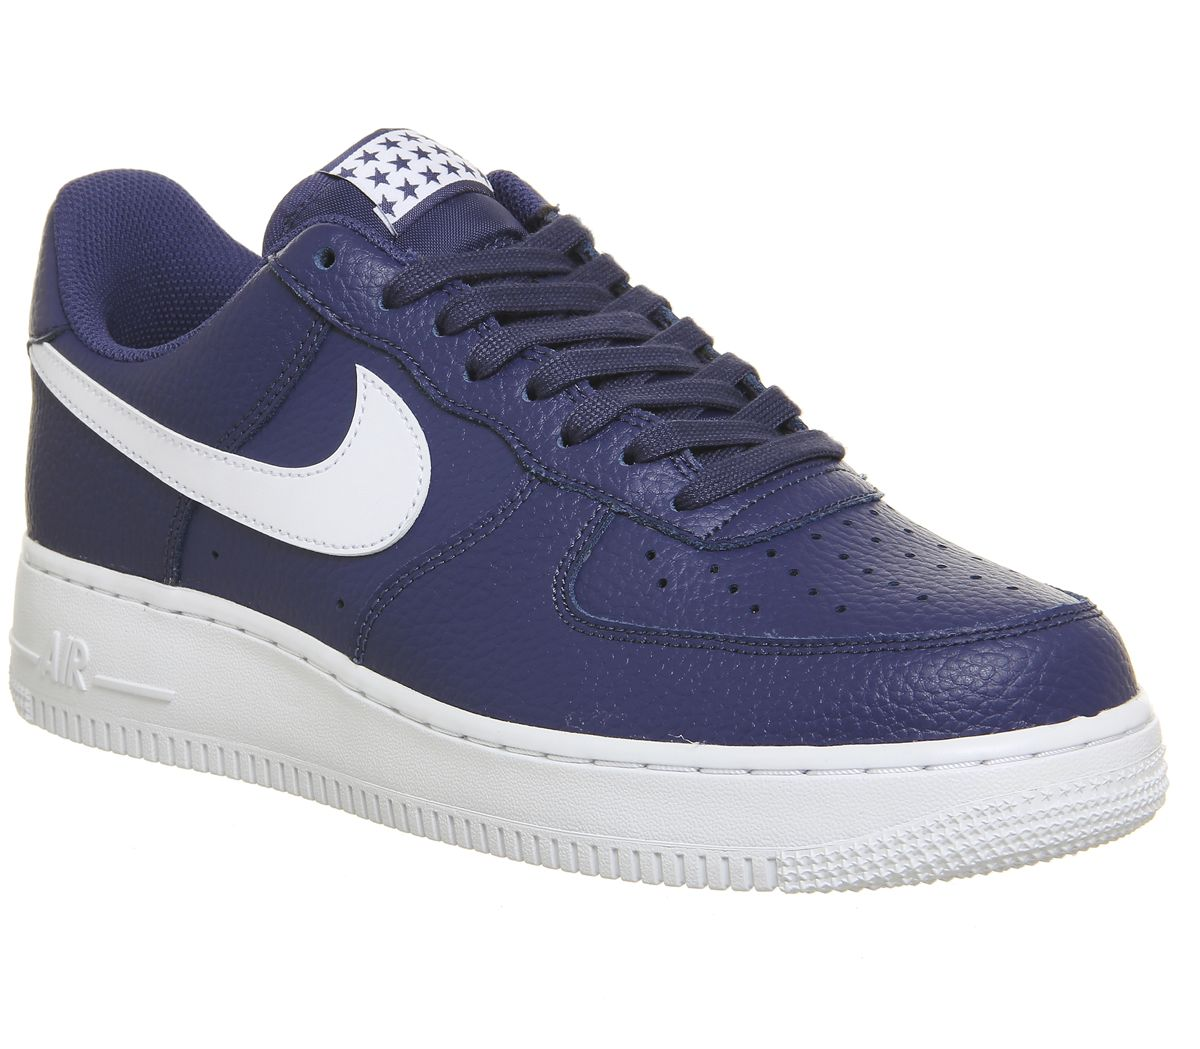 new style c8ba8 2d705 Nike Air Force 1 07 Trainers Blue Recall White - His trainers